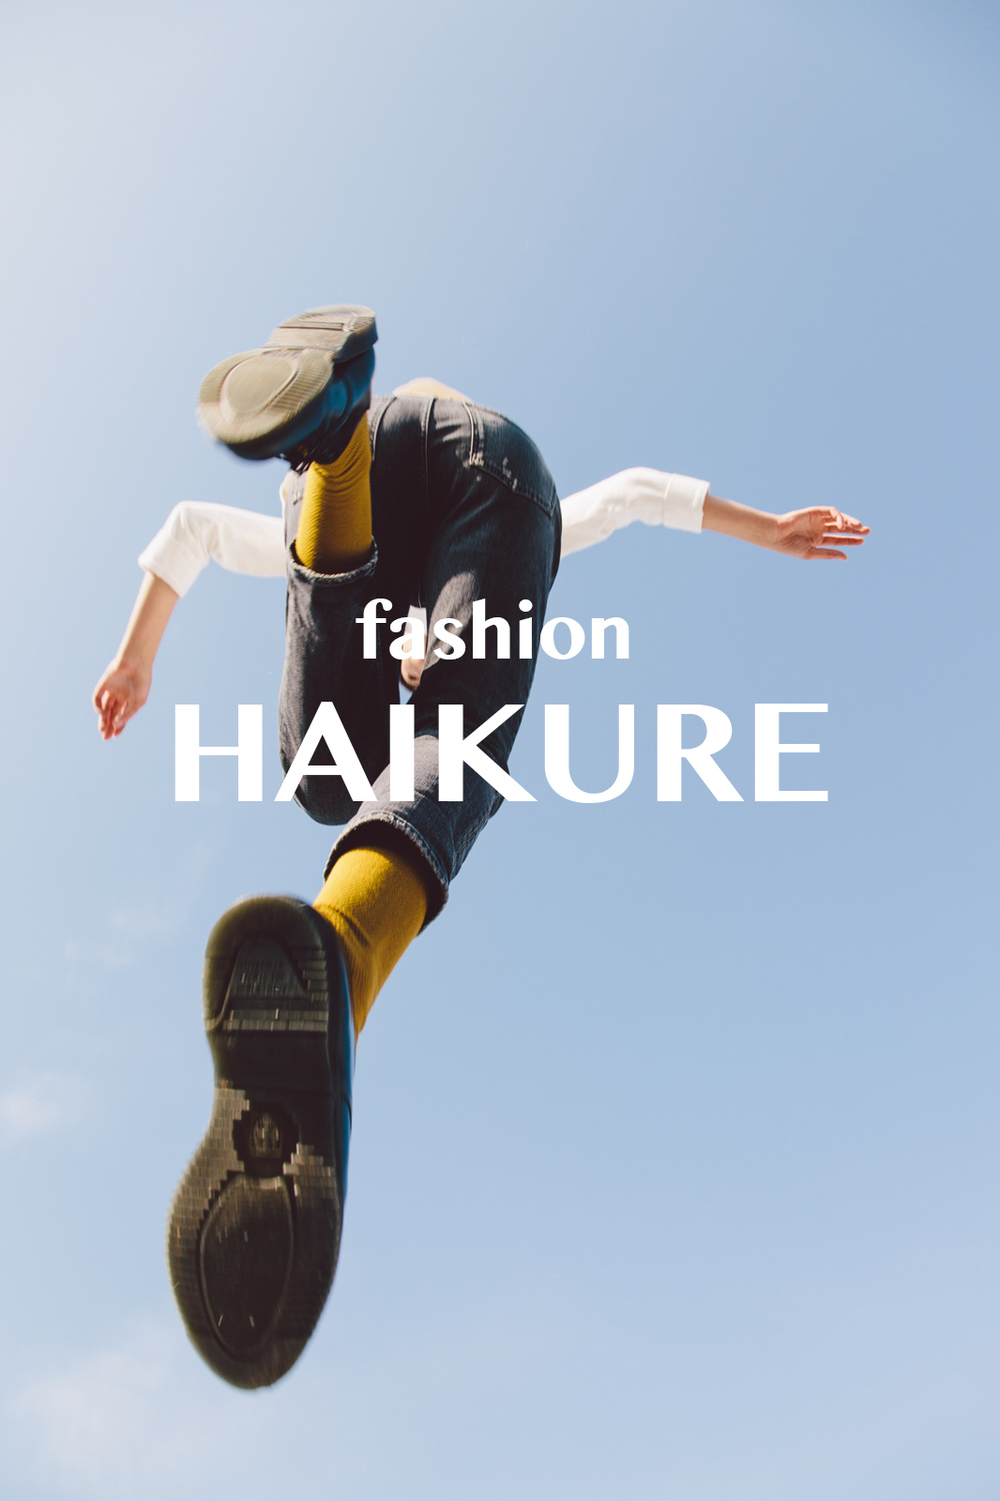 HAIKURE: PROMOTING A NEW LIFESTYLE WHERE THE LATEST TRENDS IN FASHION AND SUSTAINABILITY CO-EXIST. January 20, 2016